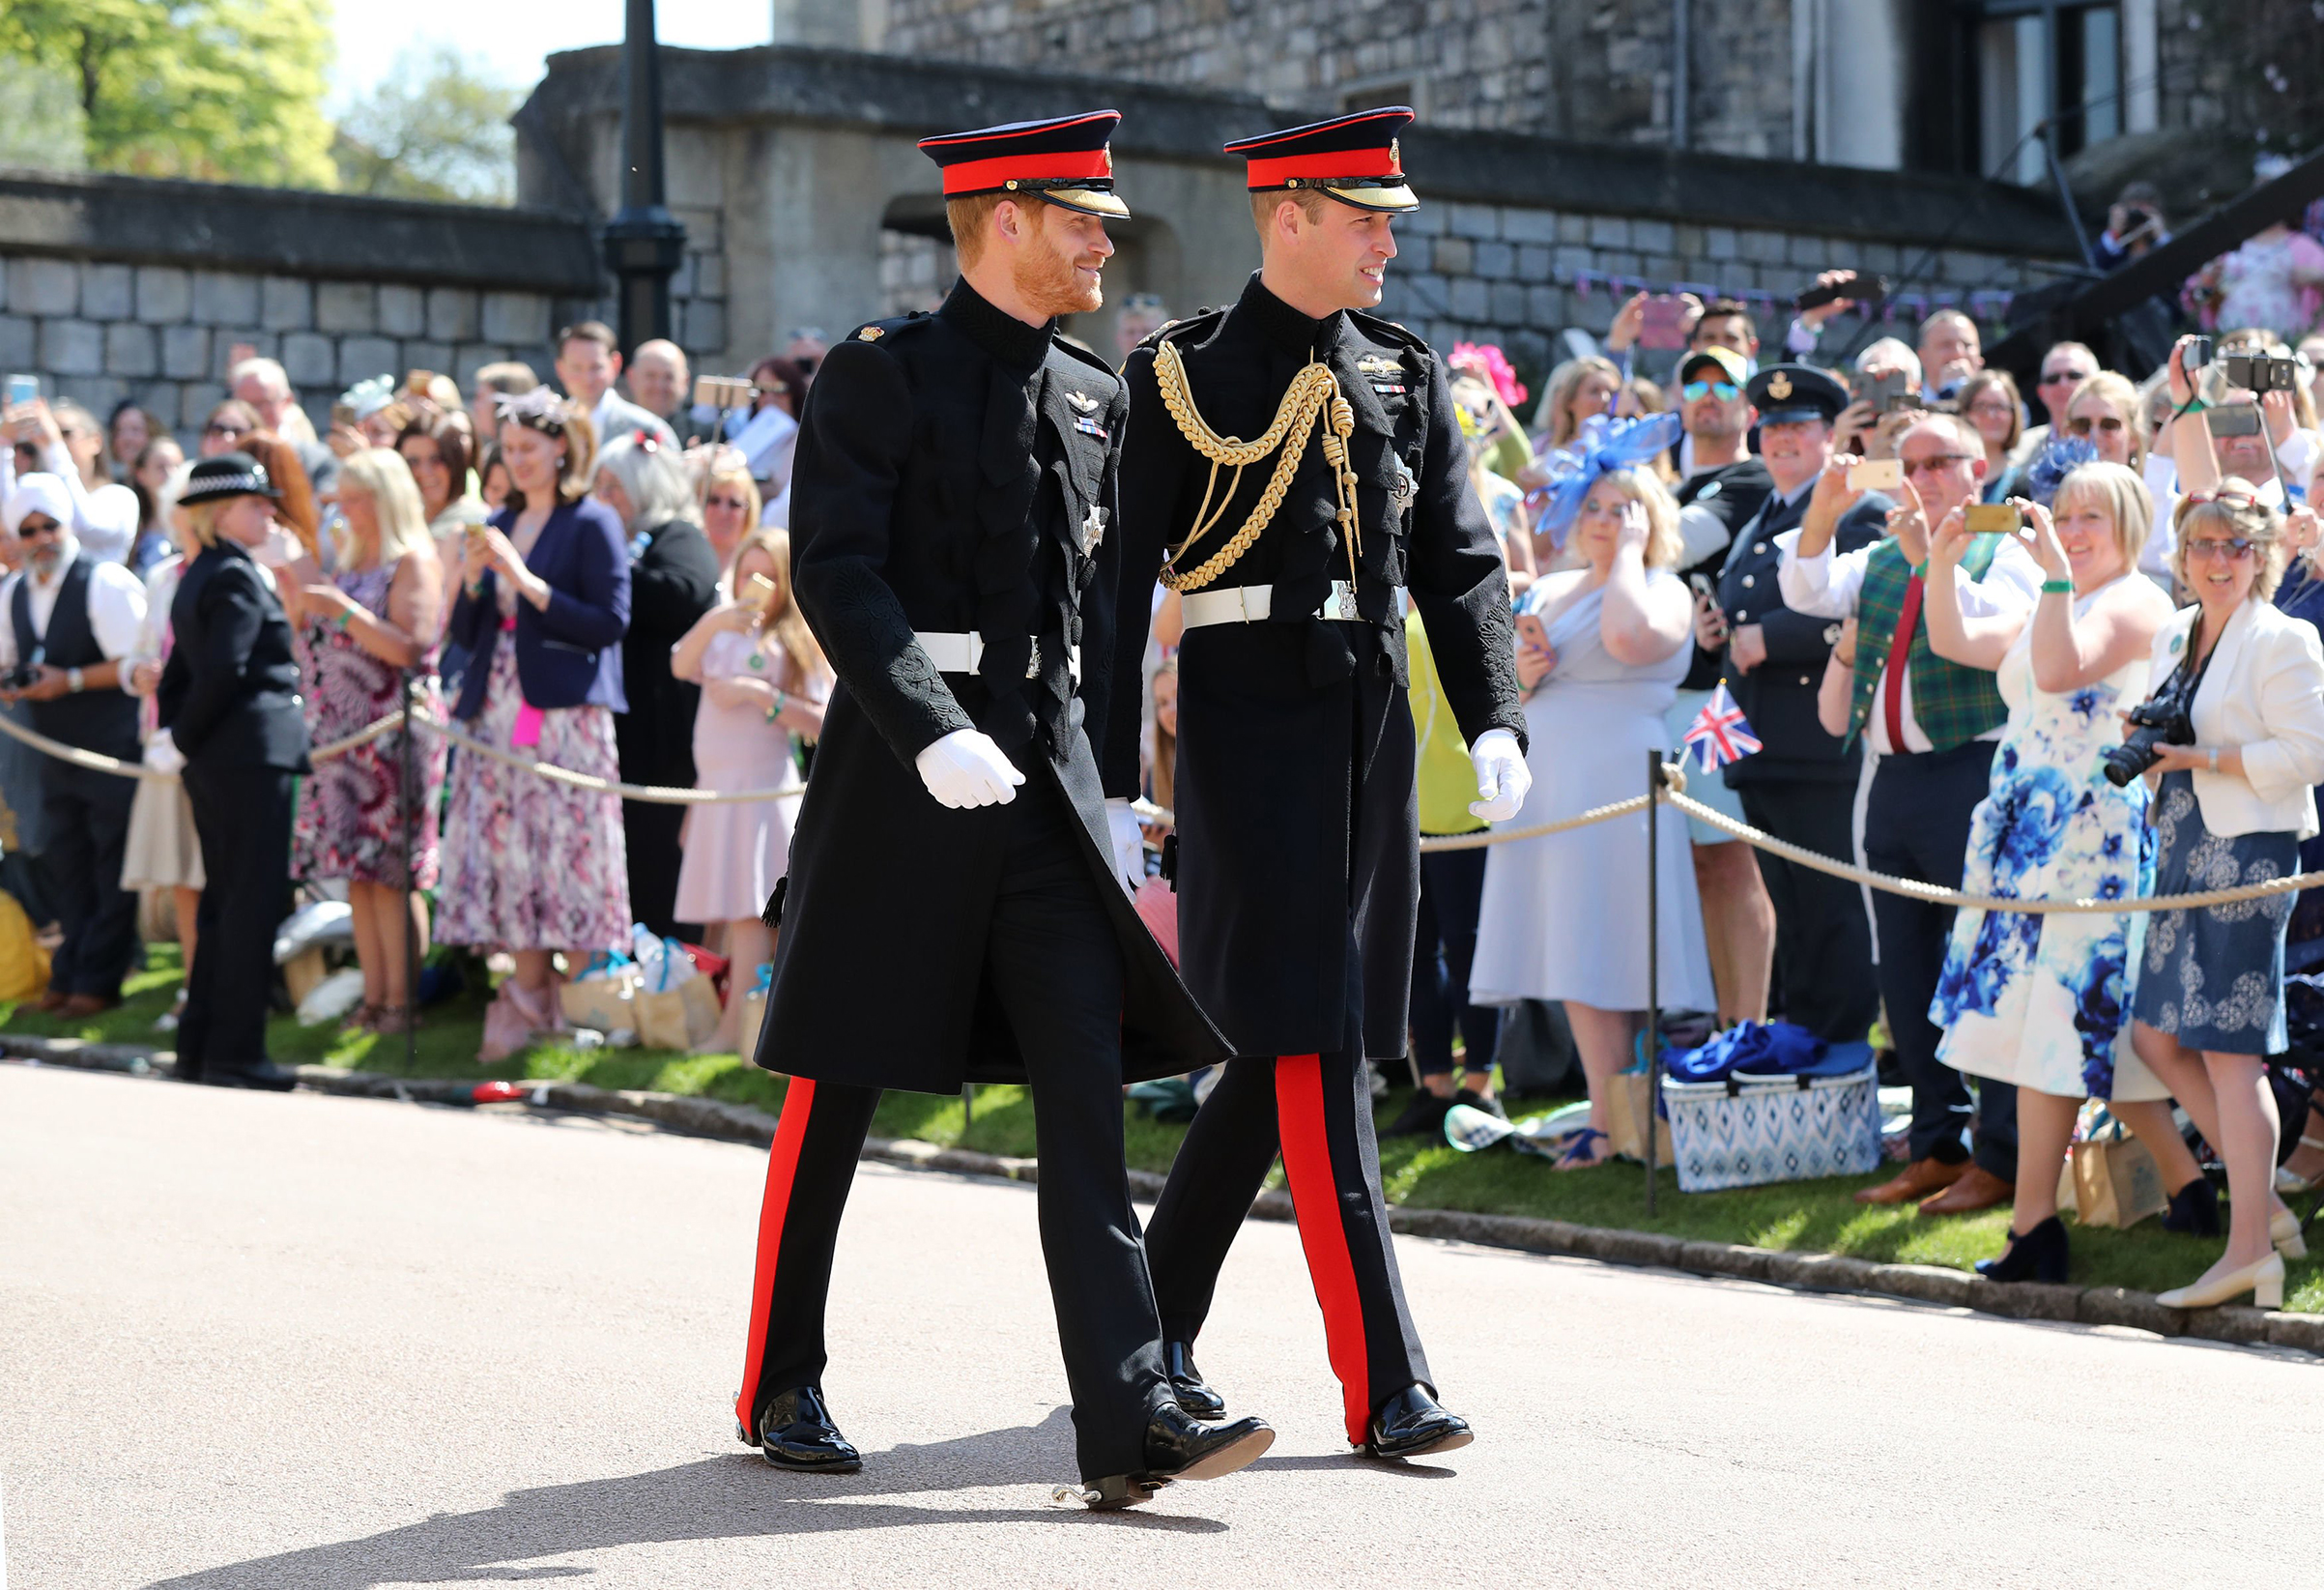 Prince Harry, Duke of Sussex, (left) arrives with his best man Prince William, Duke of Cambridge, at St George's Chapel, Windsor Castle, in Windsor, on May 19, 2018.